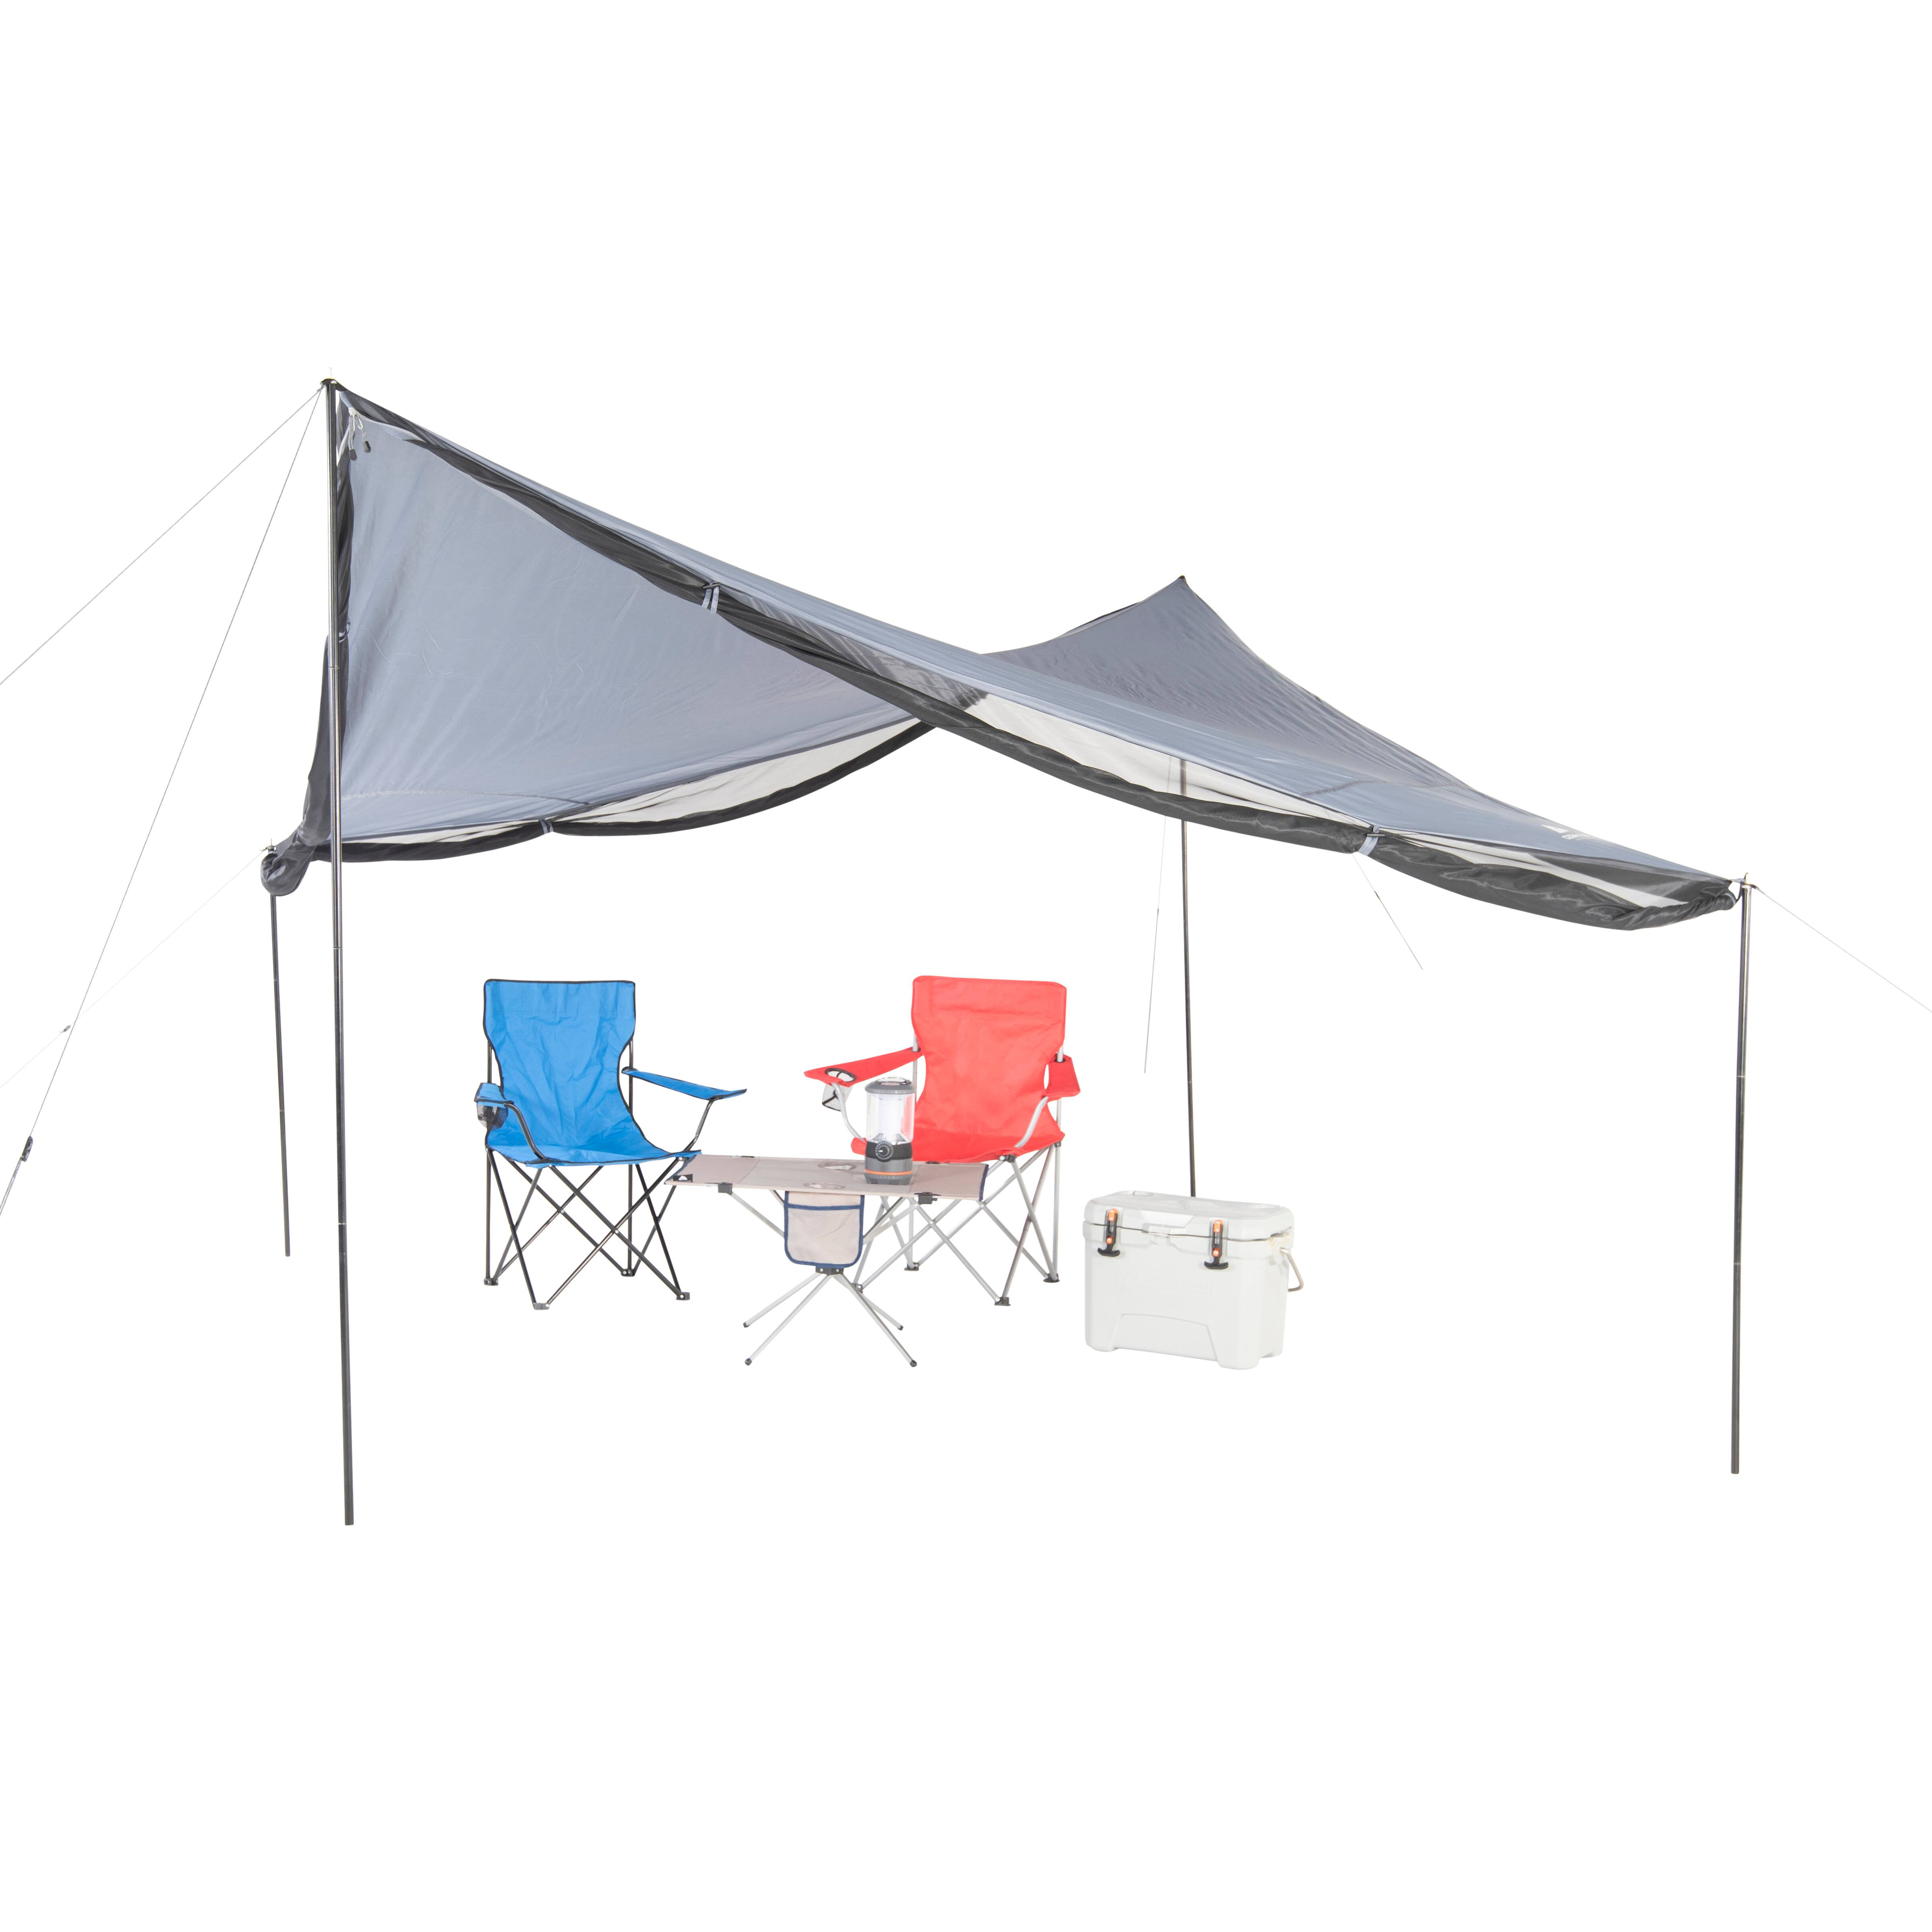 Ozark Trail Tarp Shelter with UV Protection and Roll-up Screen Walls 9 L x 9 W x 7 H @ $34 from Walmart.com